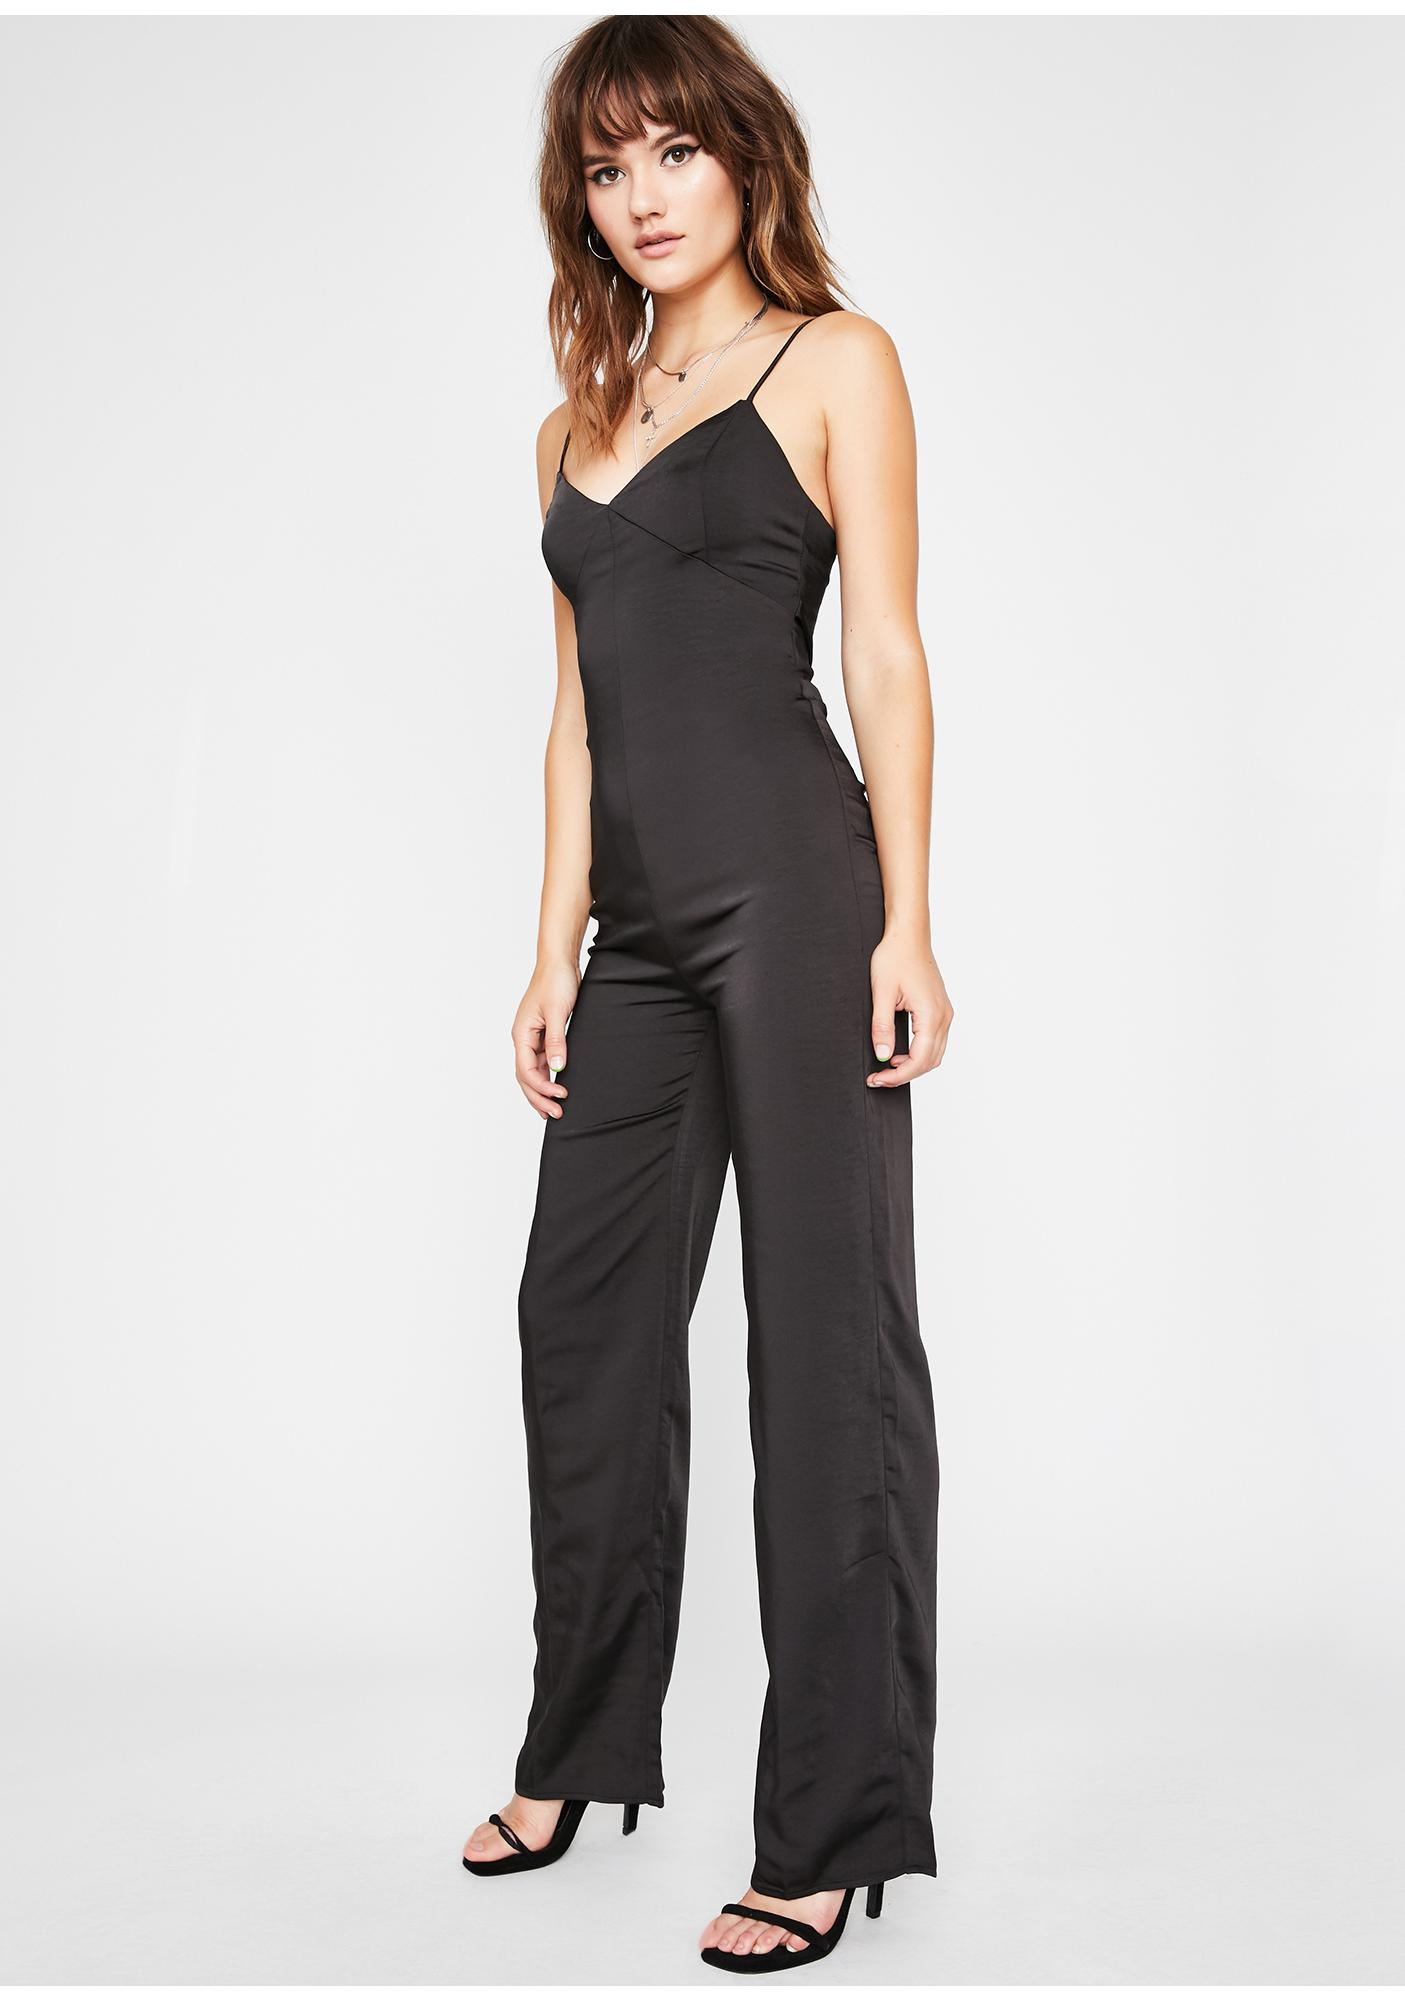 Extra Fly Satin Jumpsuit